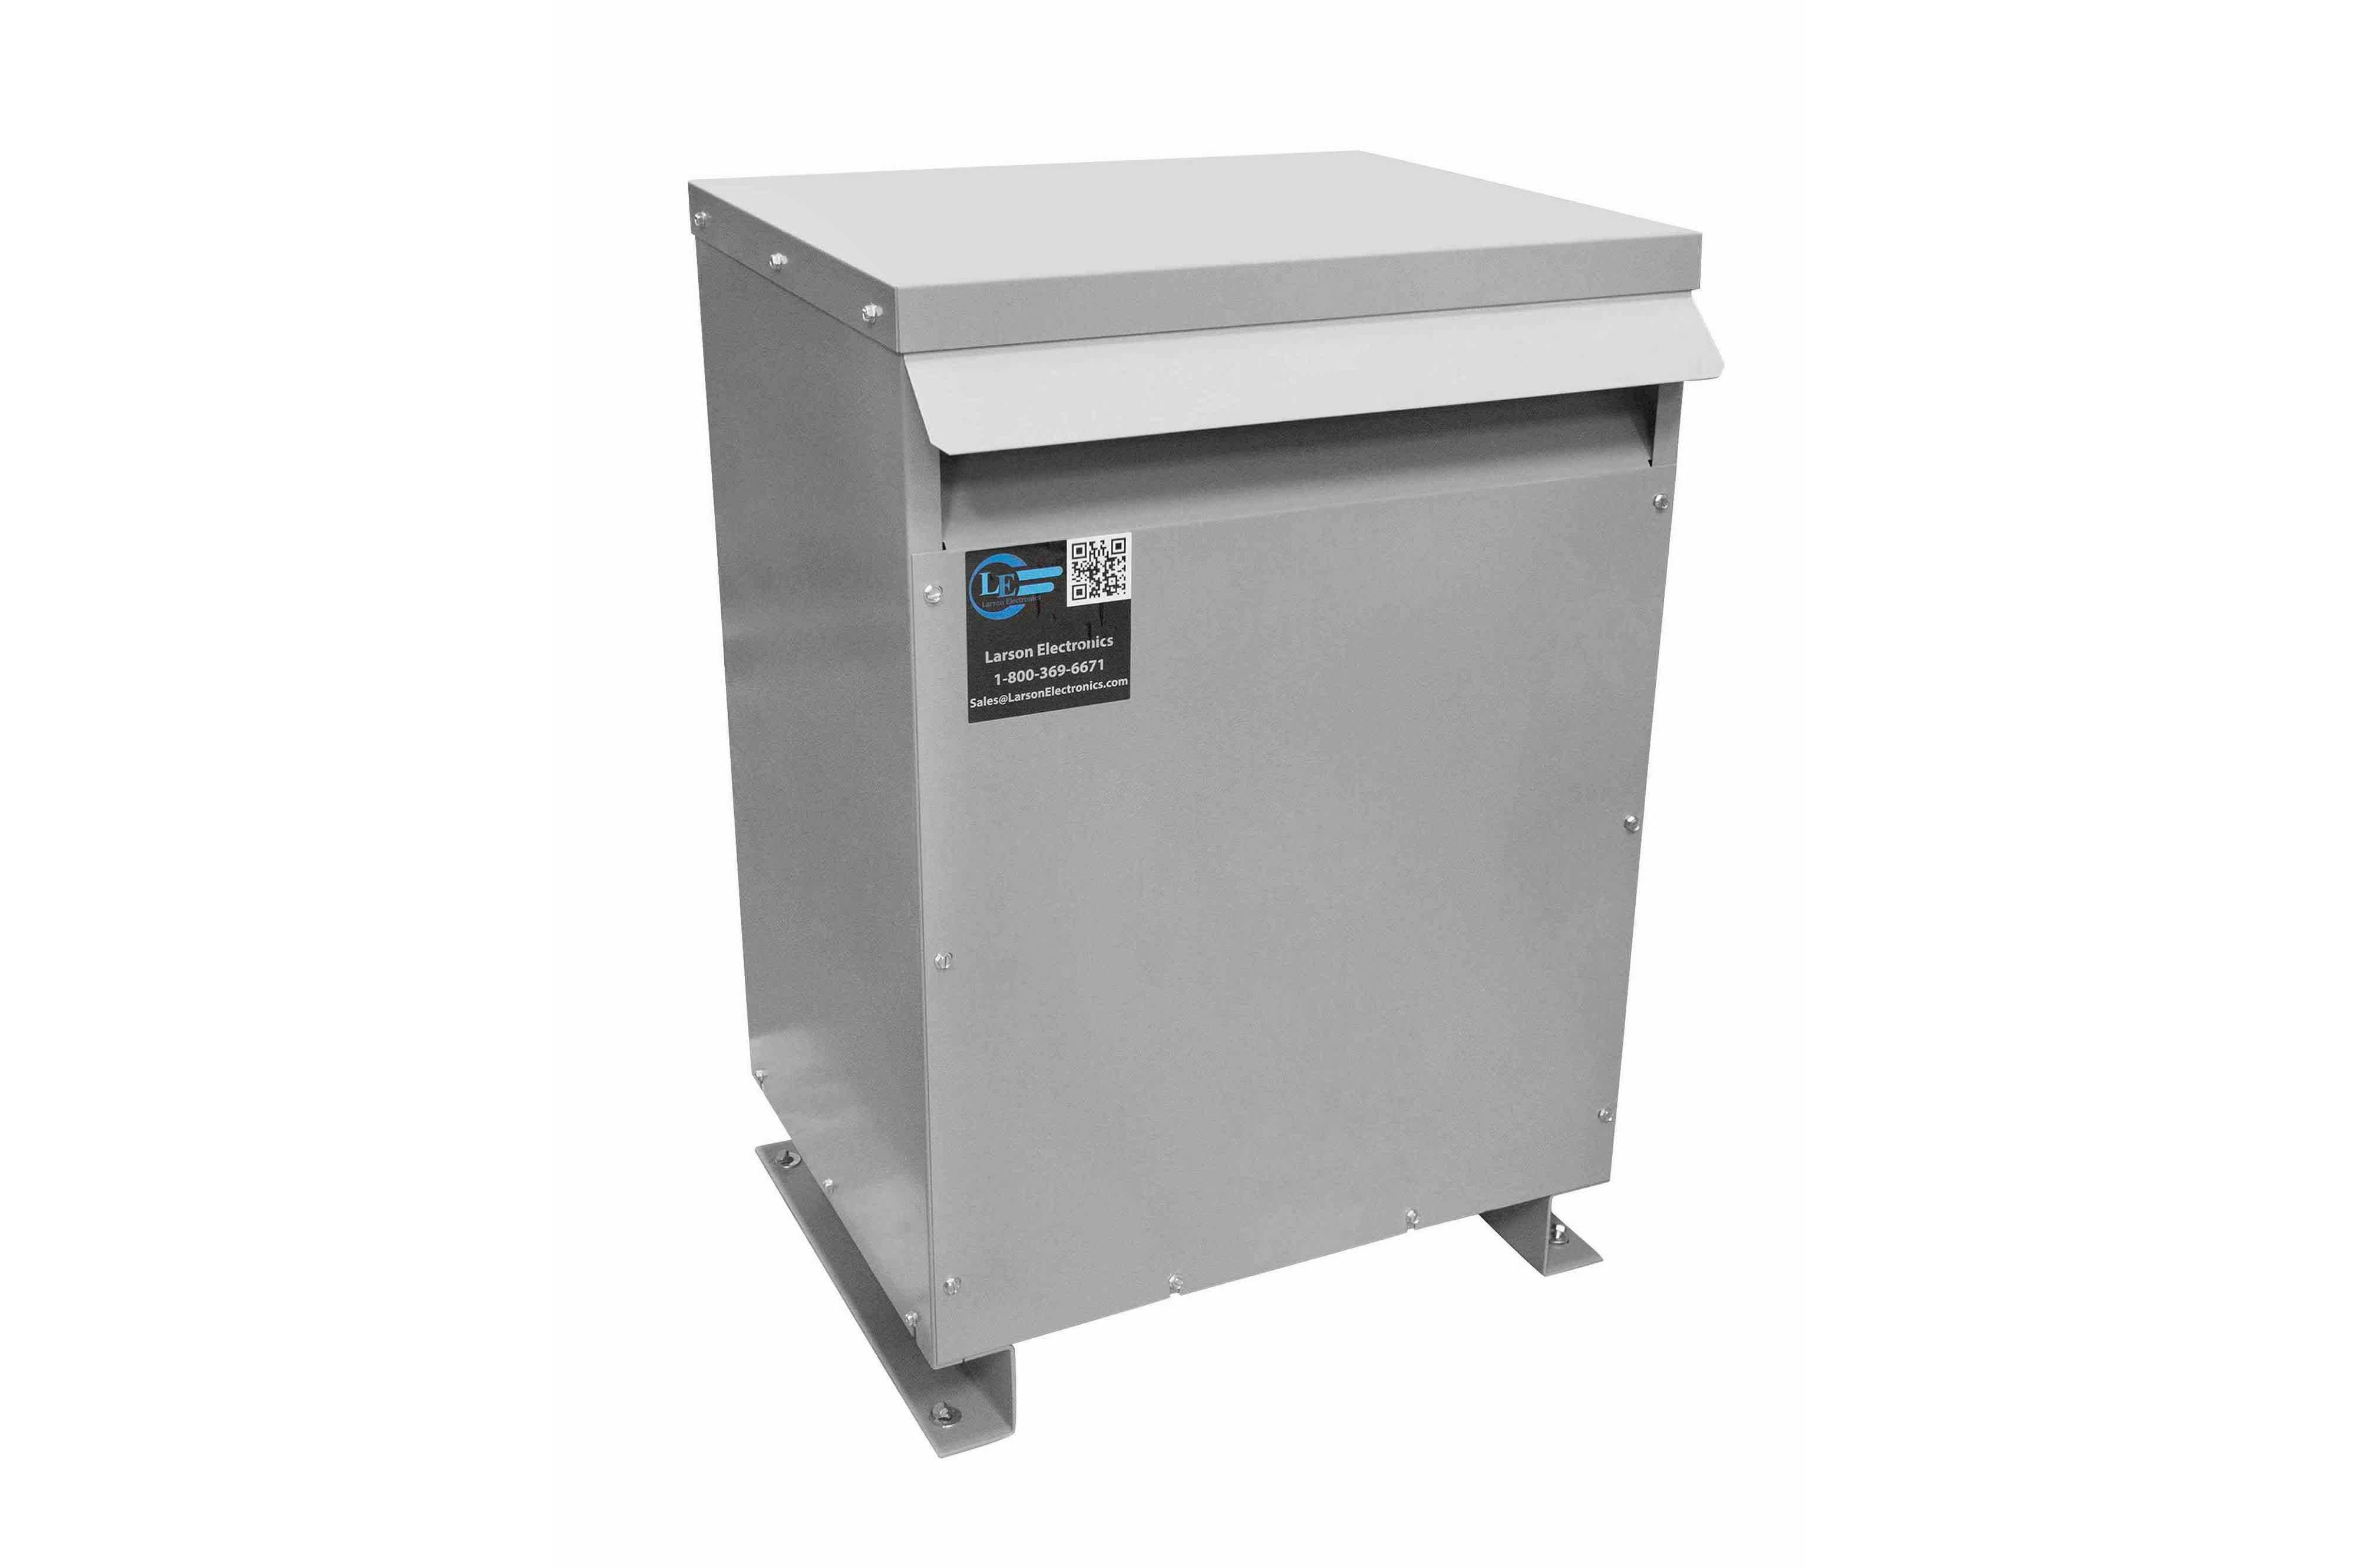 15 kVA 3PH Isolation Transformer, 440V Delta Primary, 208V Delta Secondary, N3R, Ventilated, 60 Hz